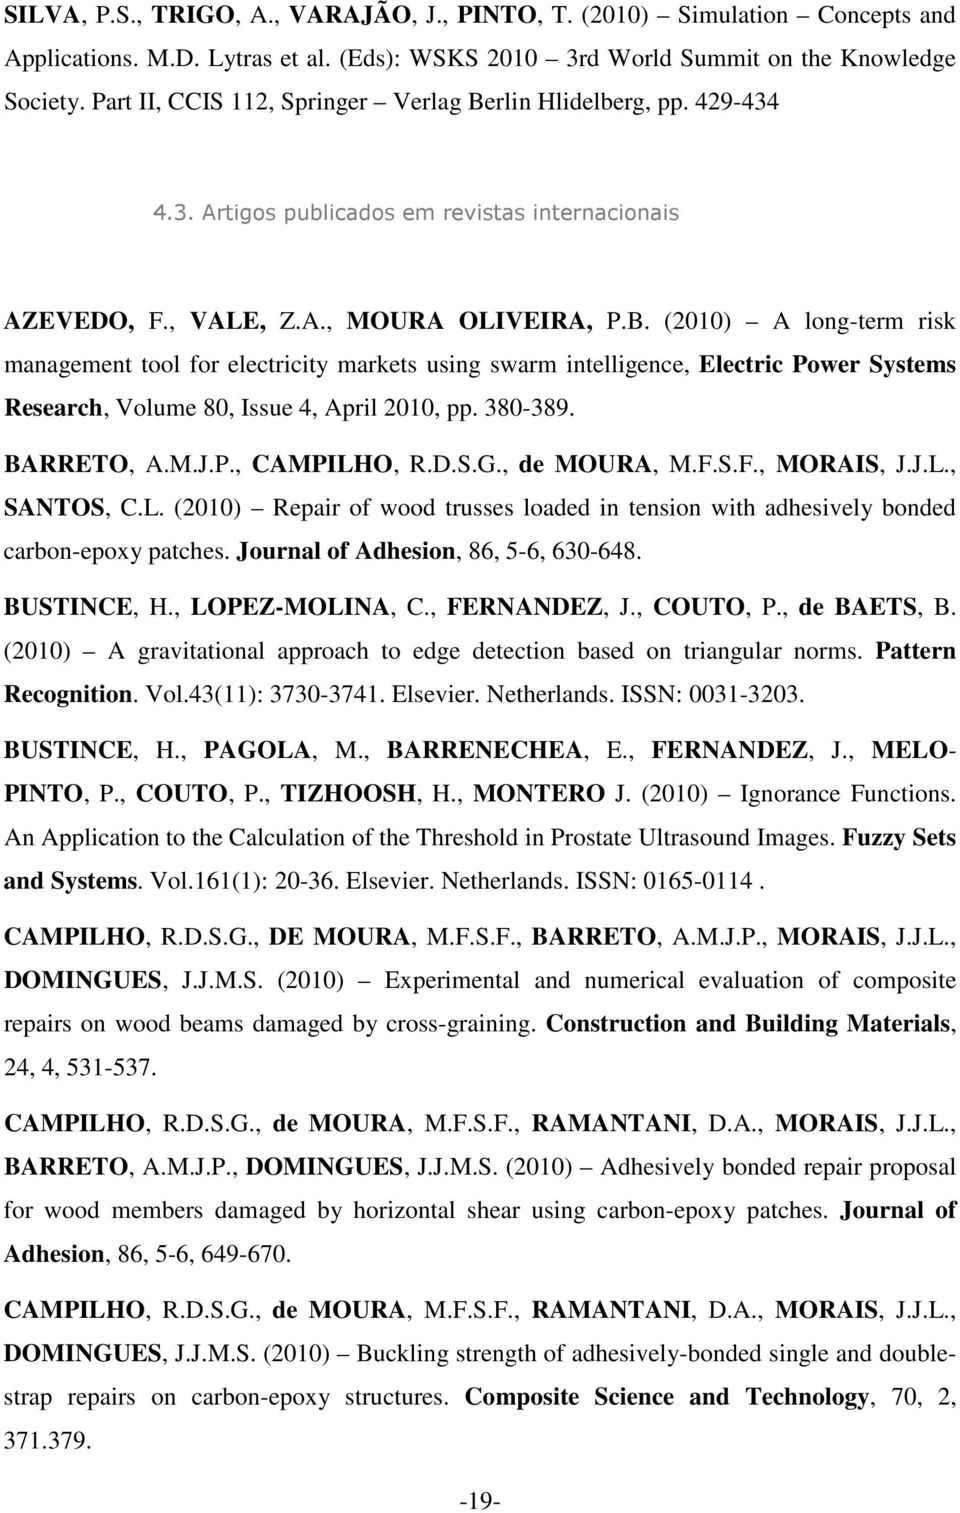 380-389. BARRETO, A.M.J.P., CAMPILHO, R.D.S.G., de MOURA, M.F.S.F., MORAIS, J.J.L., SANTOS, C.L. (2010) Repair of wood trusses loaded in tension with adhesively bonded carbon-epoxy patches.